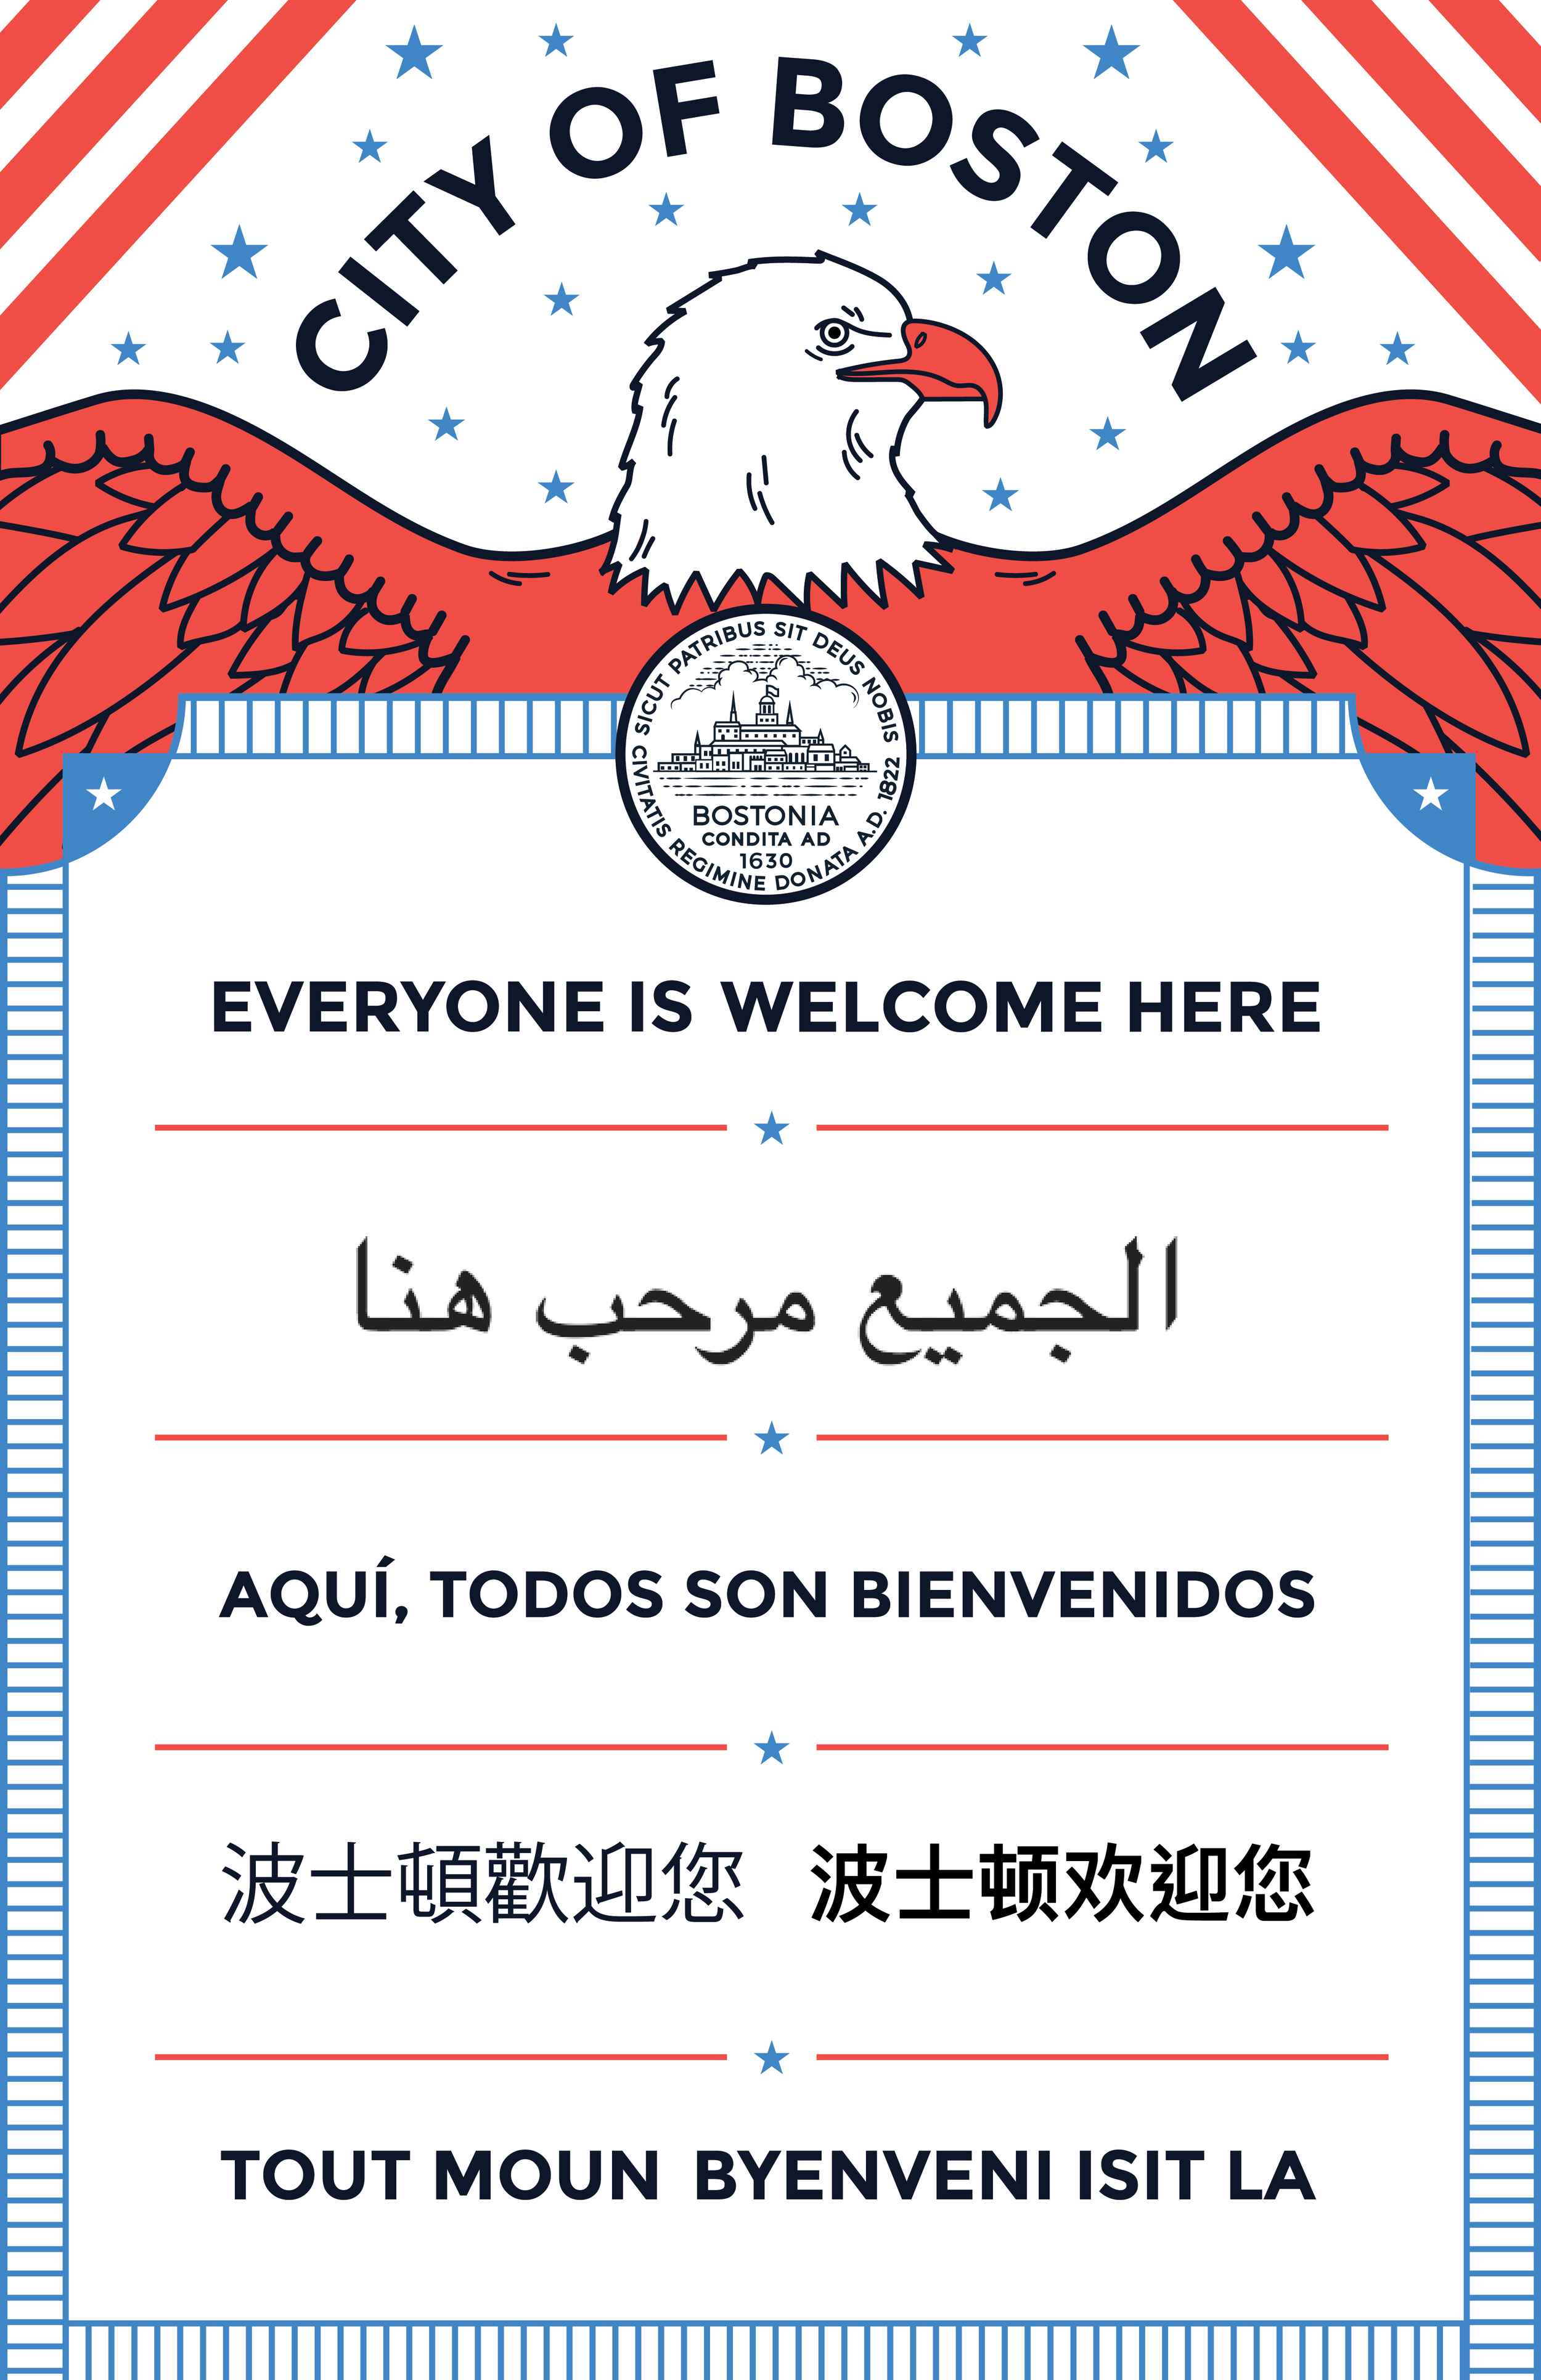 EVERYONE IS WELCOME HERE     Poster for the City of Boston   Featured on the Boston, Massachusetts Facebook page  link   Winner of the GDUSA 2017 Inhouse Design Award